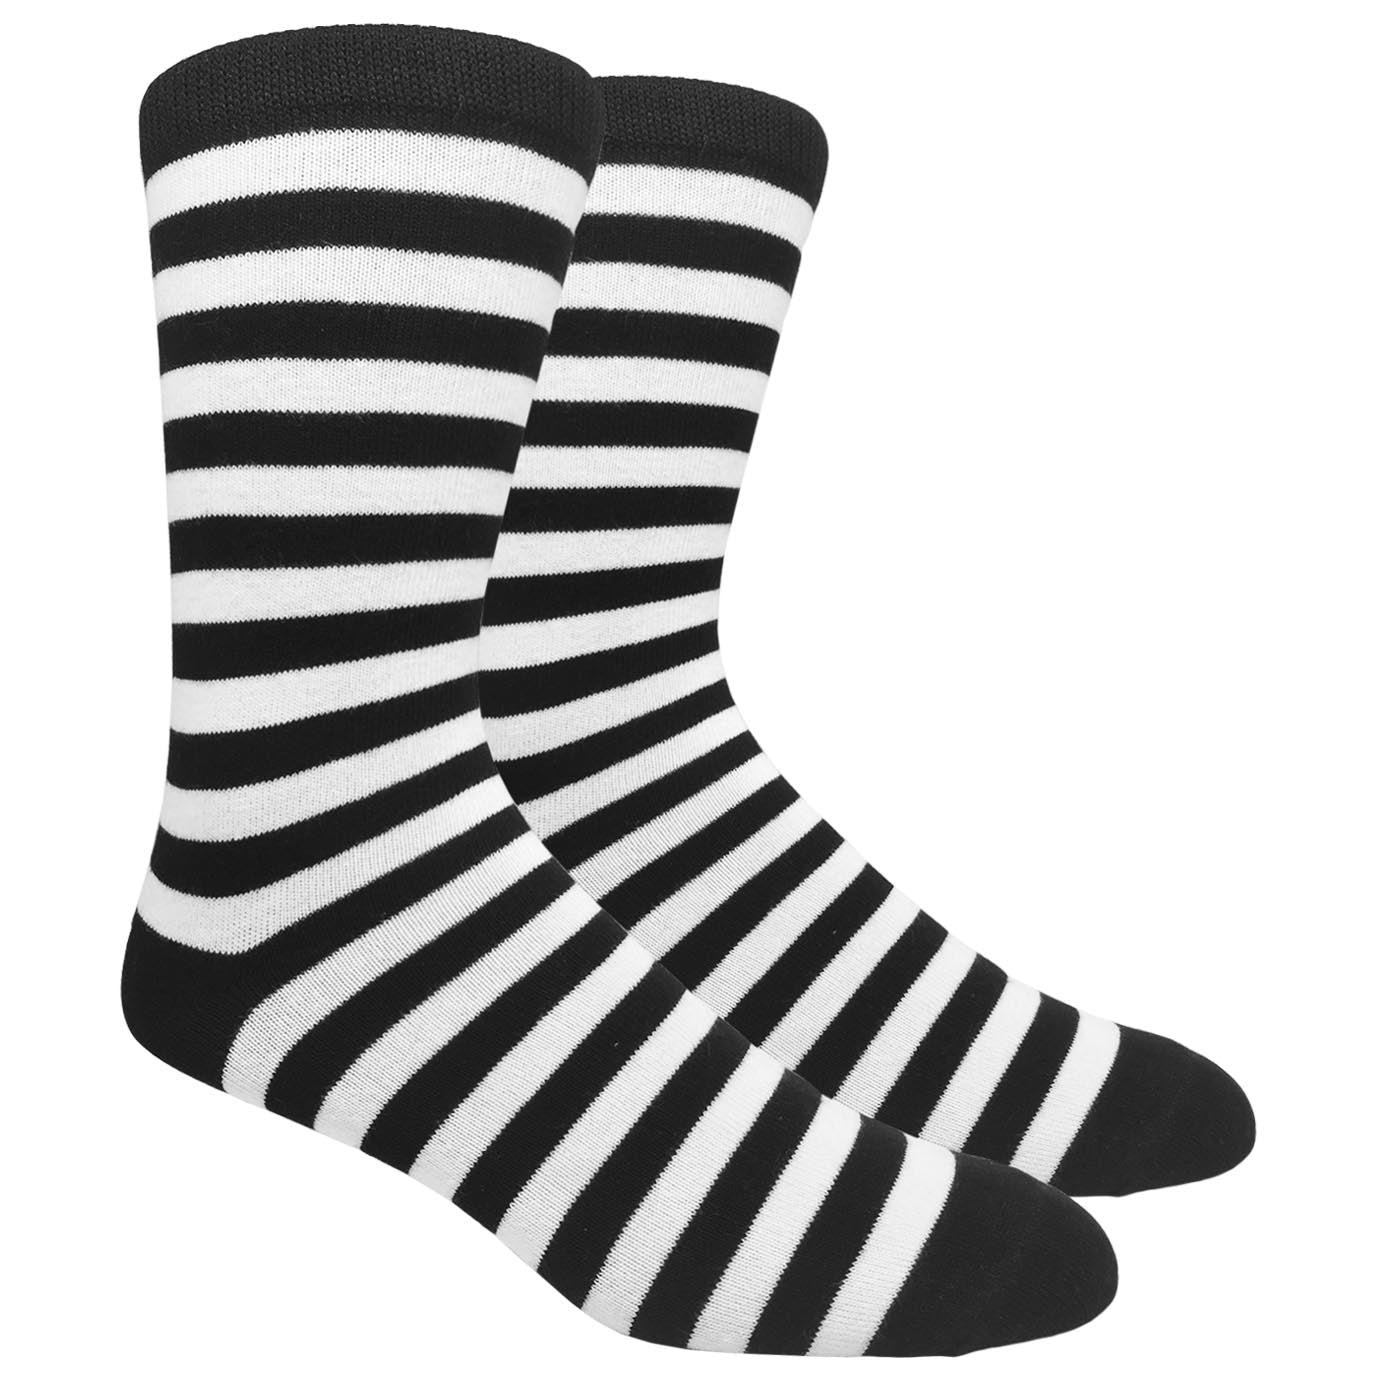 FineFit Black Label Stripe Socks - Black & White